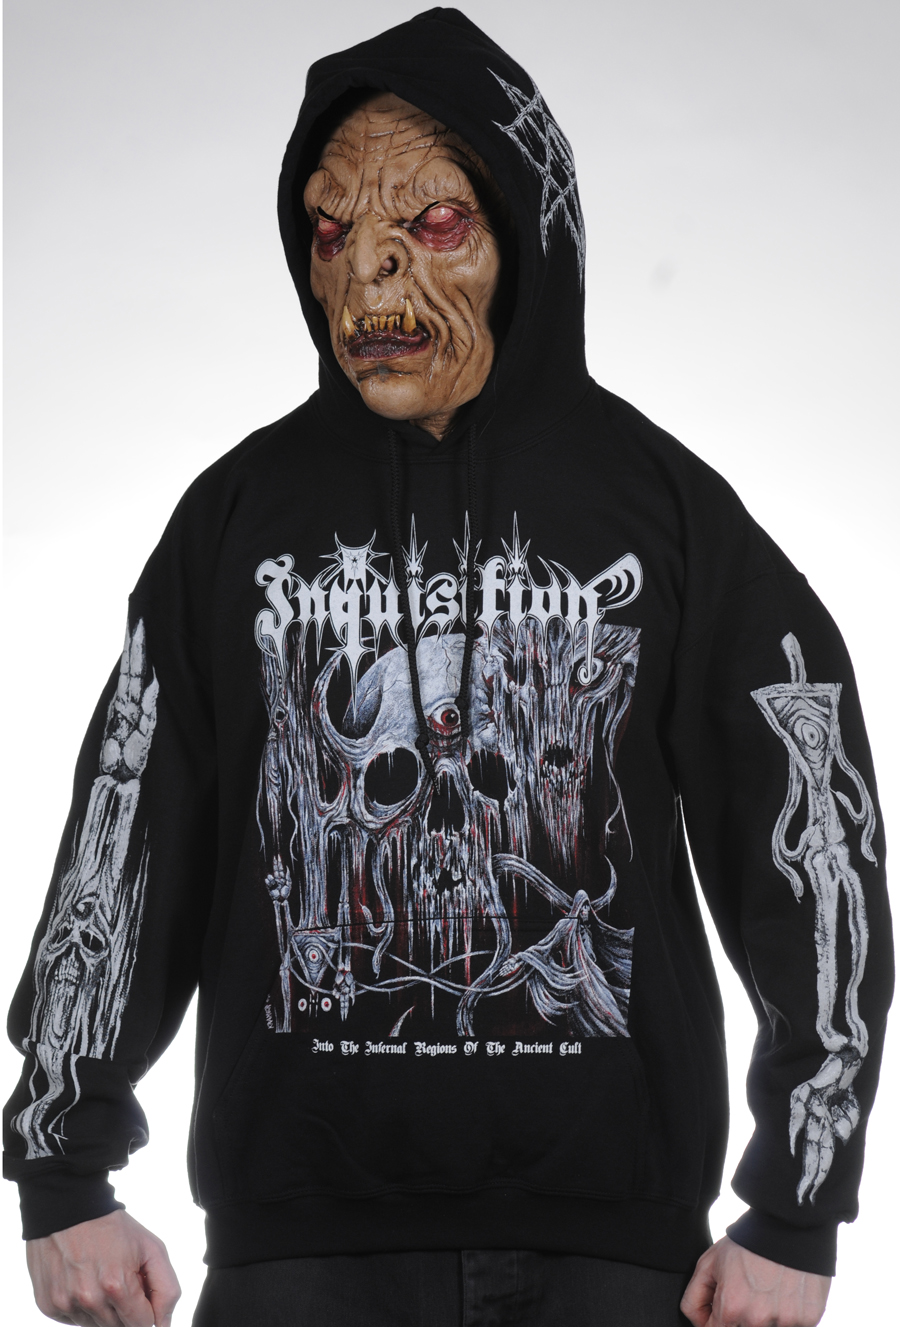 Black Death Metal Hoodies - CLOTHING | Hells Headbangers